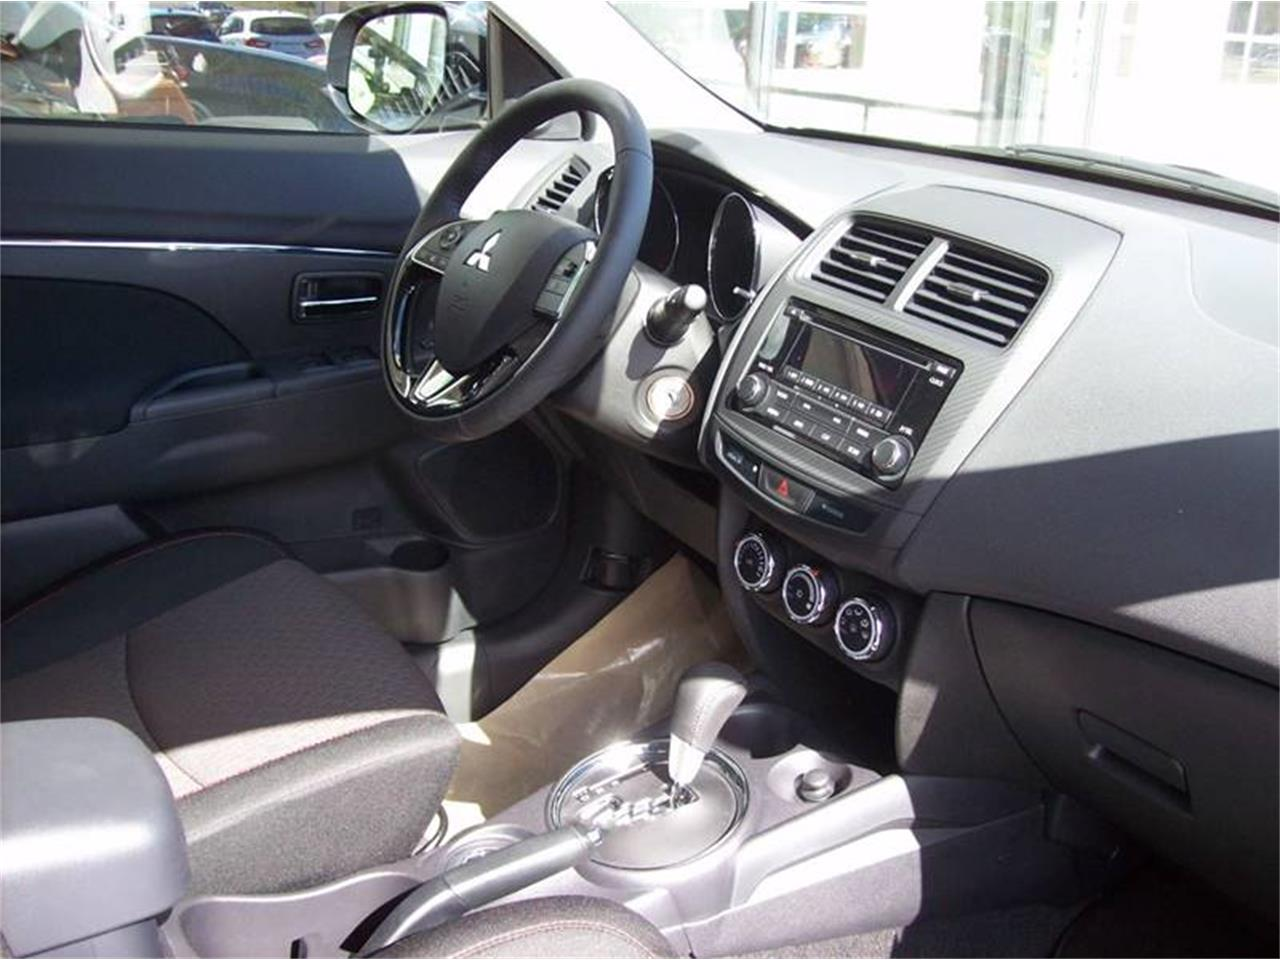 Large Picture of '17 Mitsubishi Outlander located in Michigan - $18,685.00 - L8Y5